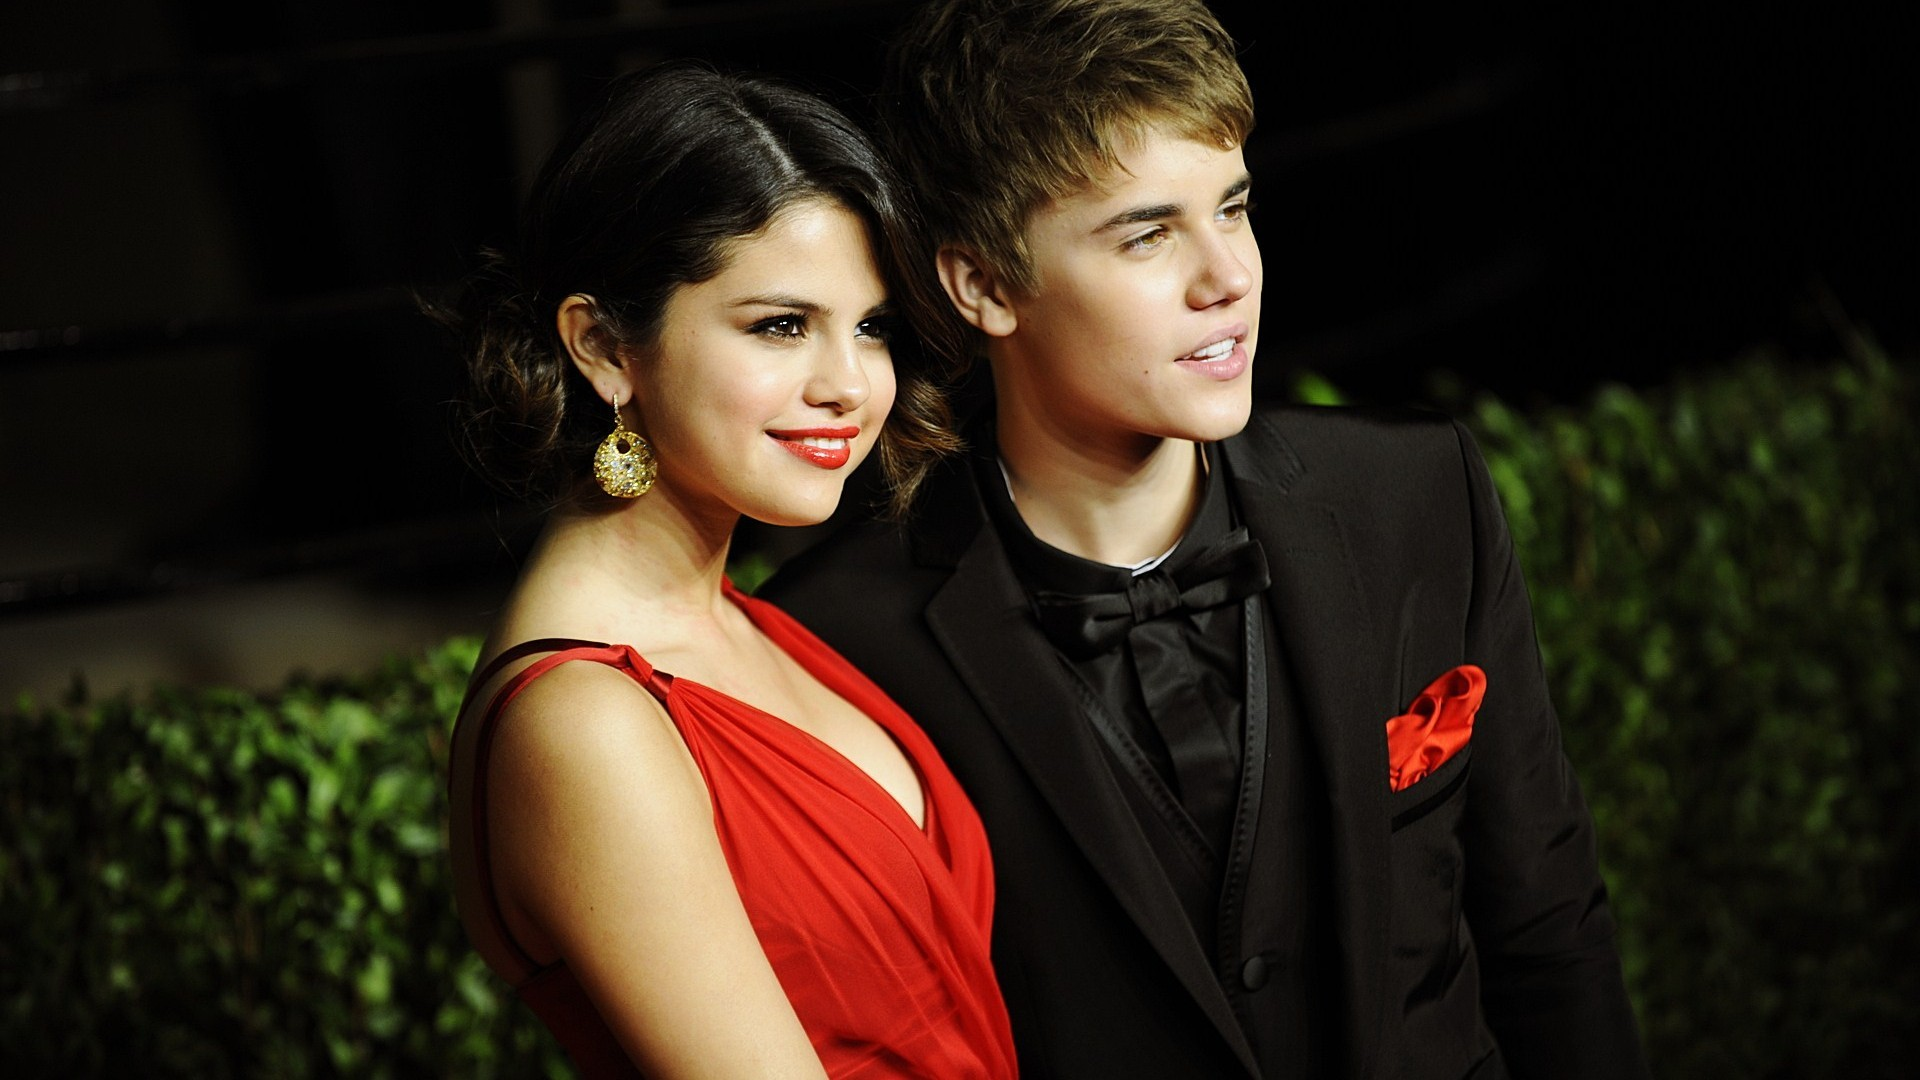 1920x1080 Justin Bieber And Selena Gomez Wallpapers Widescreen